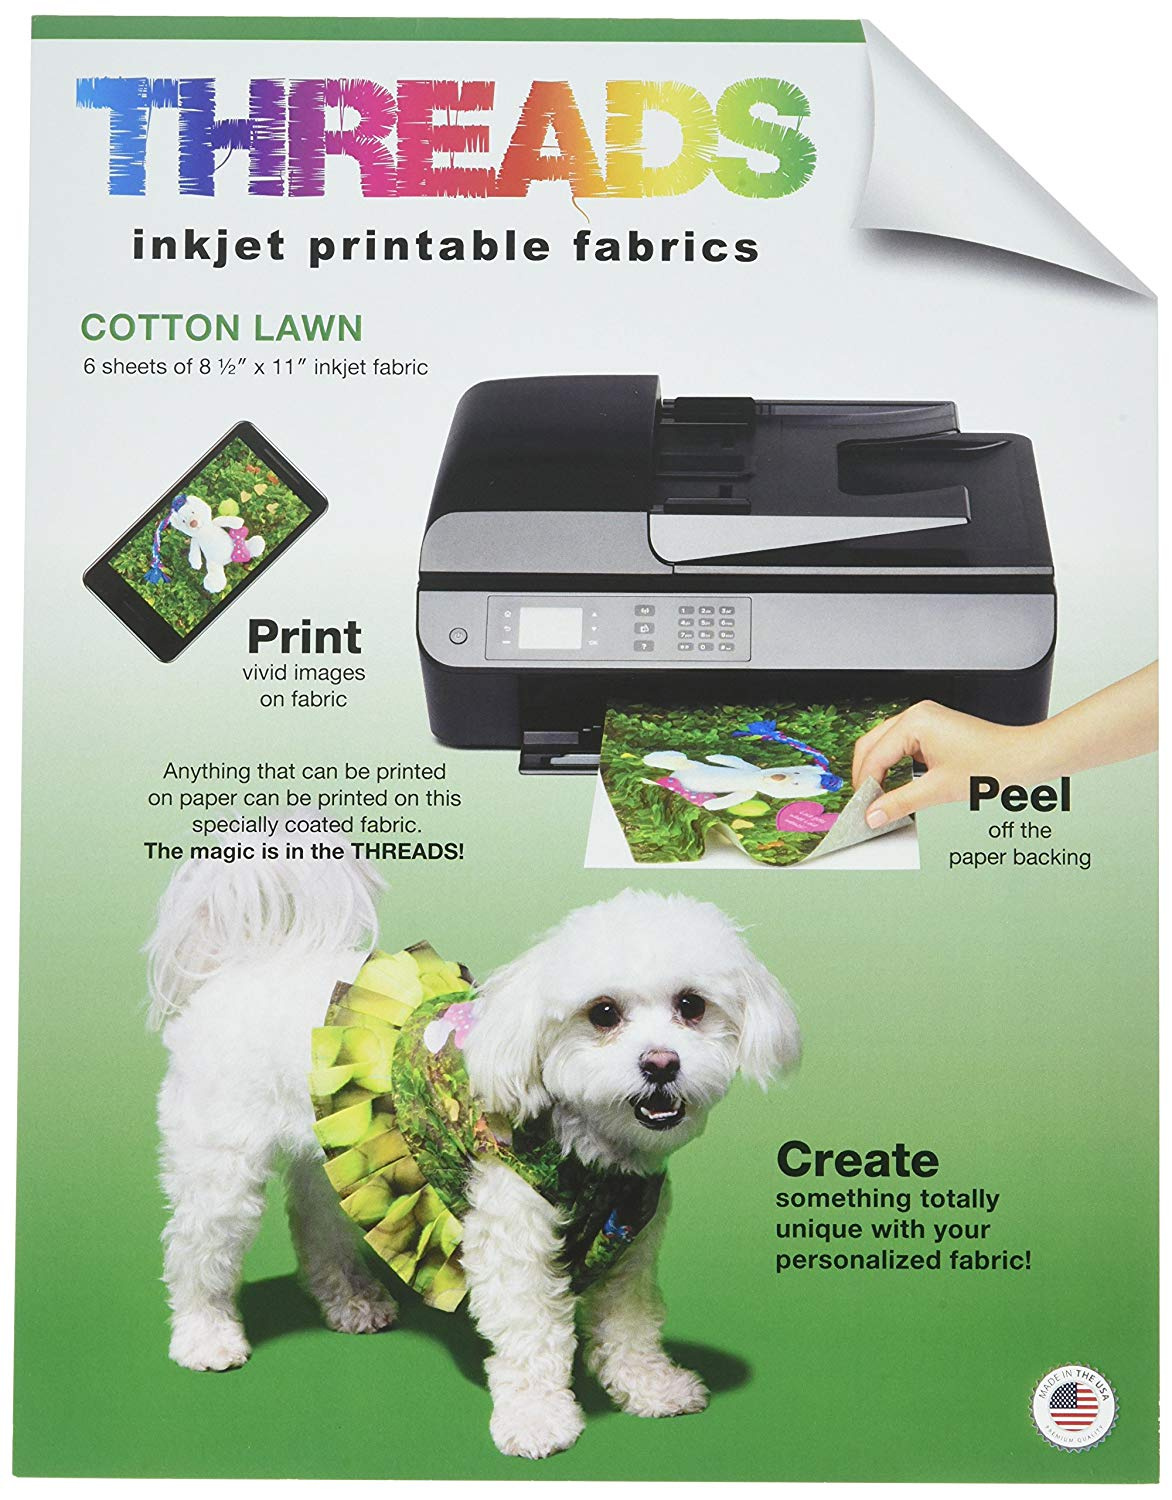 photo regarding Printable Fabric Sheets for Inkjet Printers referred to as Threads TXIT100620 Inkjet Printable Cloth Sheets, 22cm x 28cm 6/Pkg